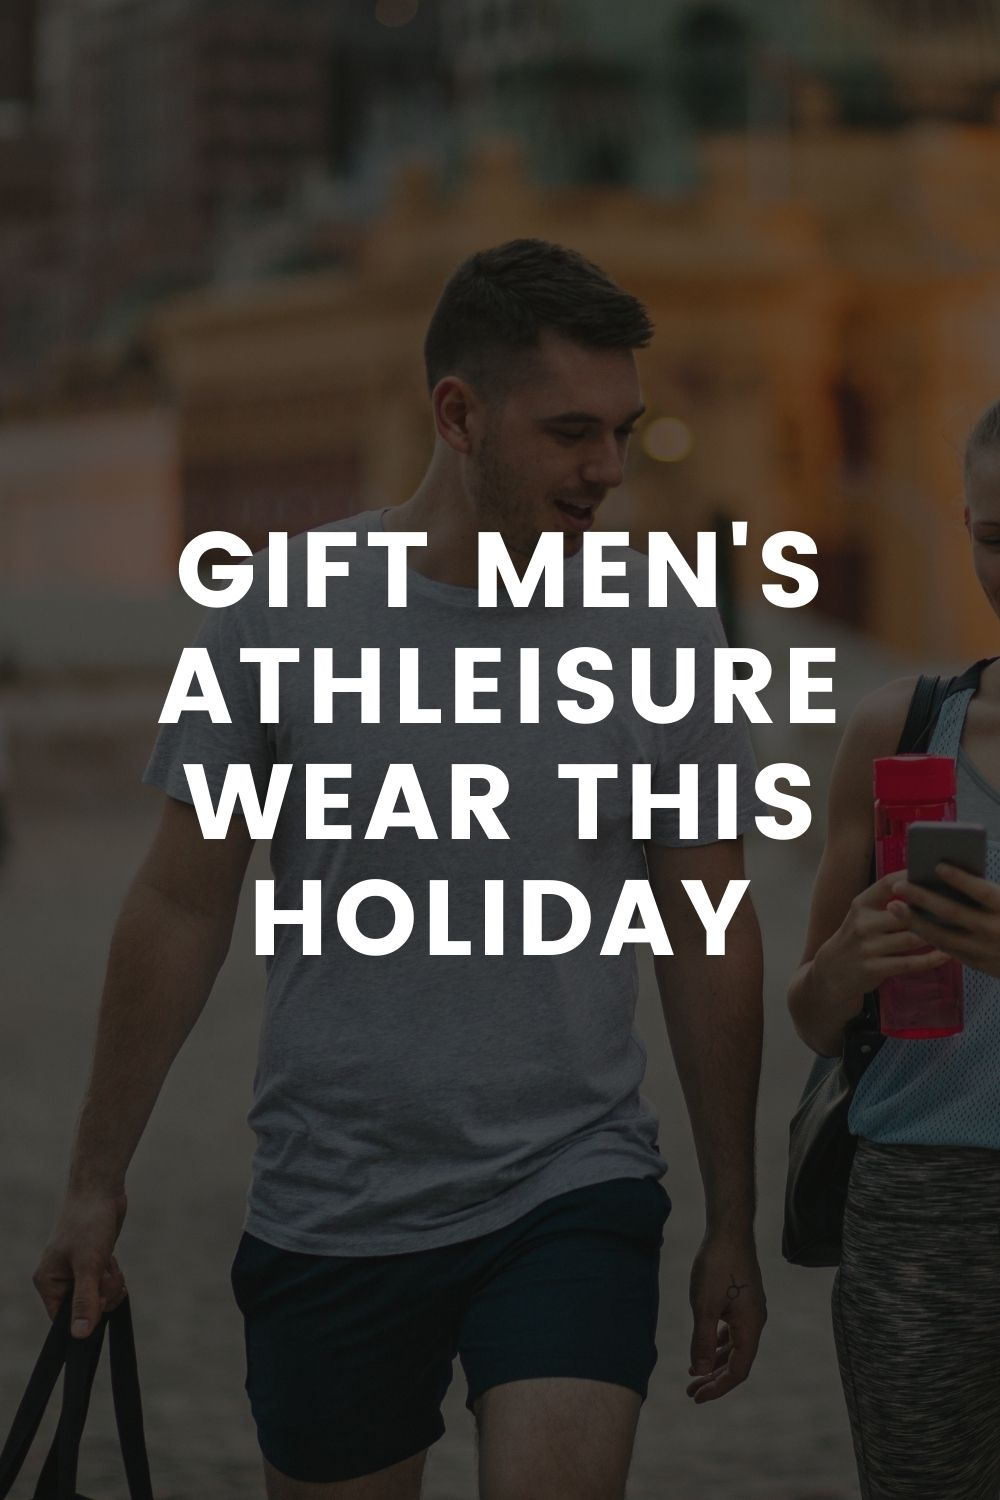 Gift Men's Athleisure Wear this Holiday